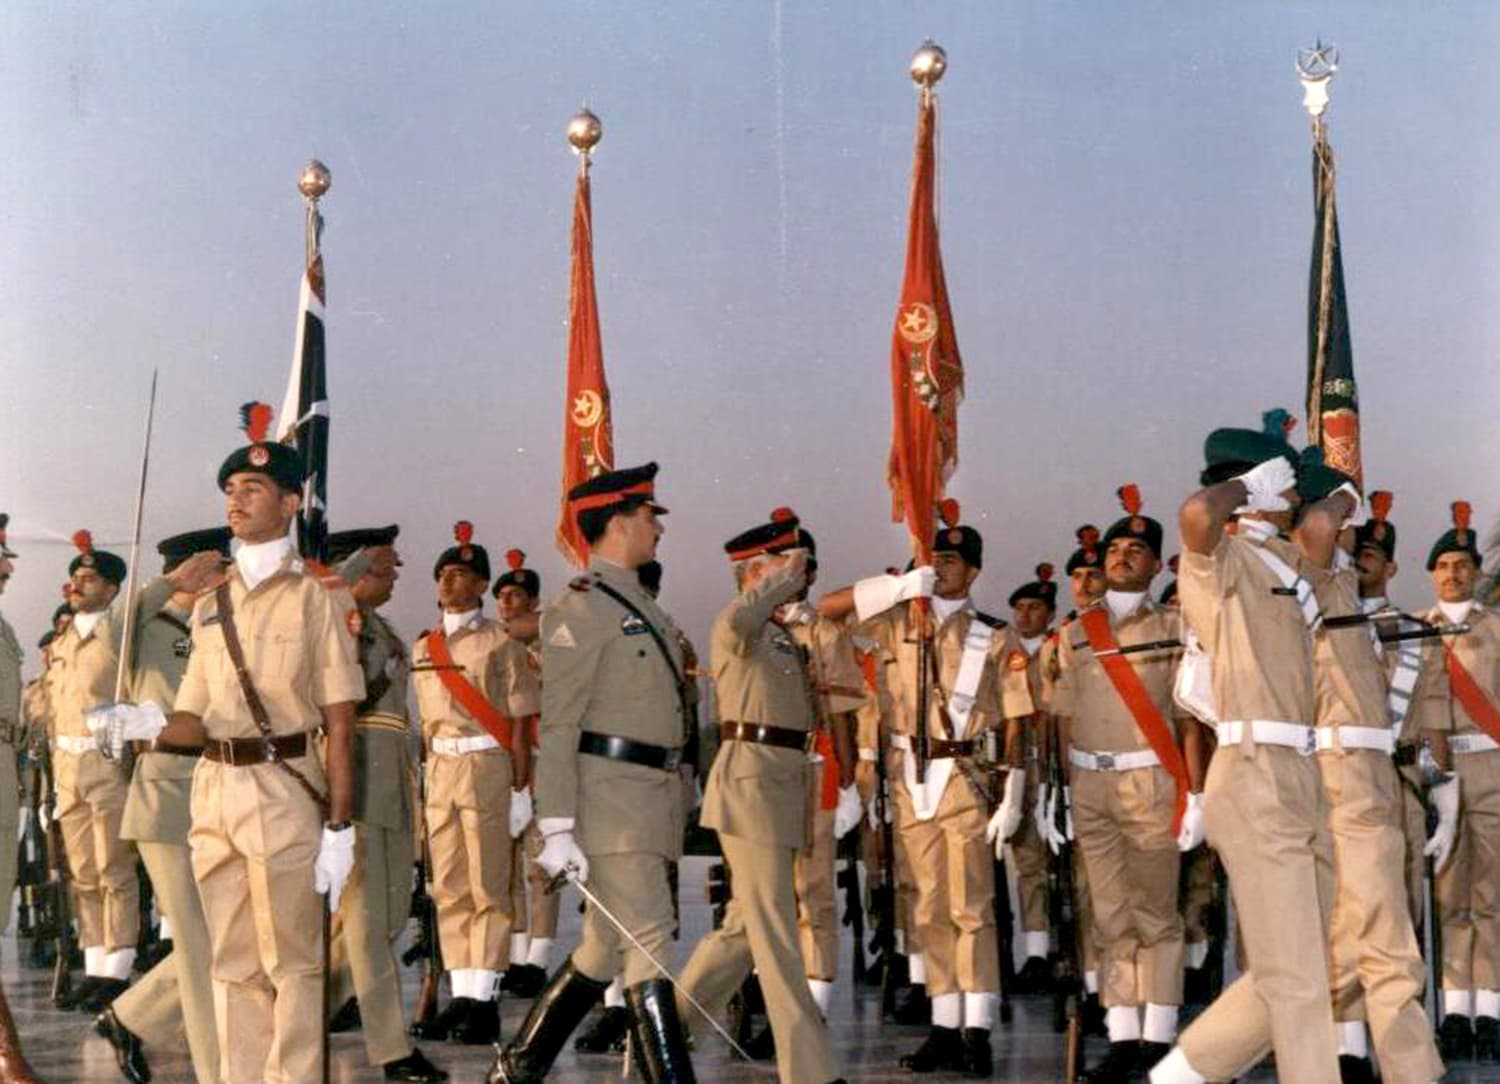 Raheel Sharif was part of the army's infantry division.